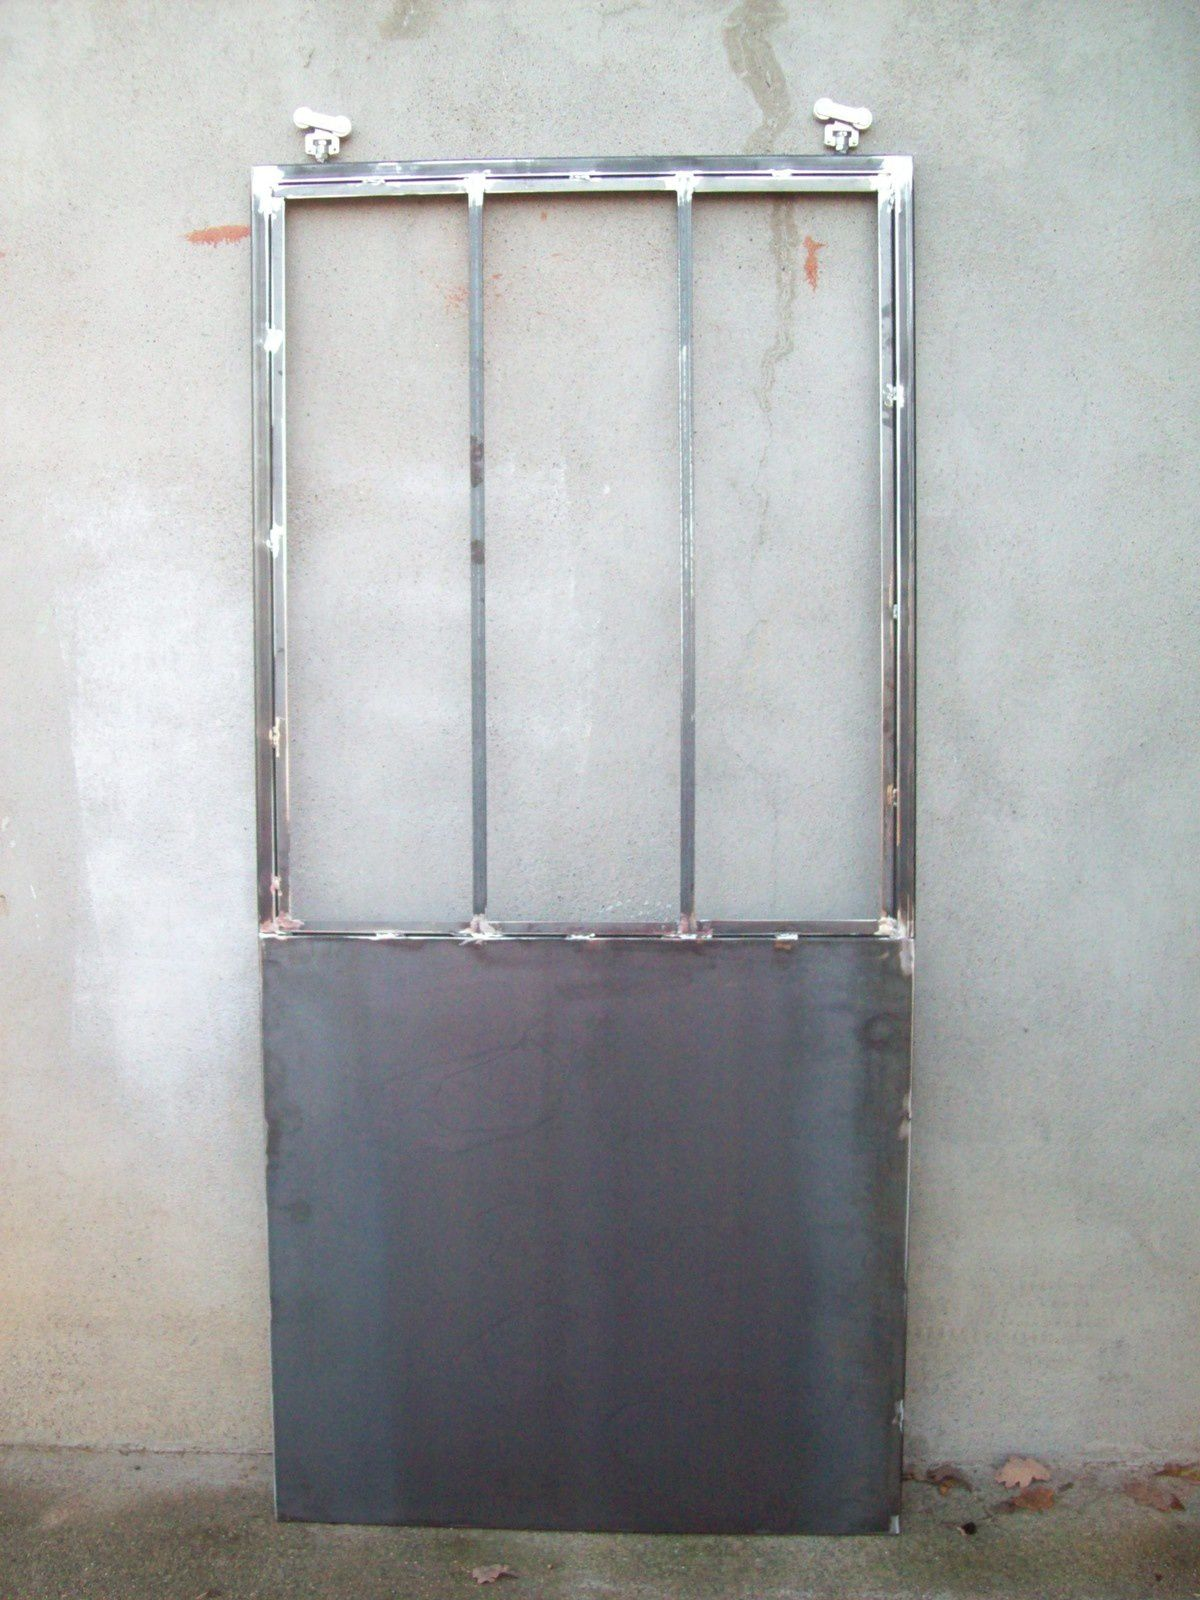 Porte suspendue coulissante 2sae for Porte coulissante suspendu